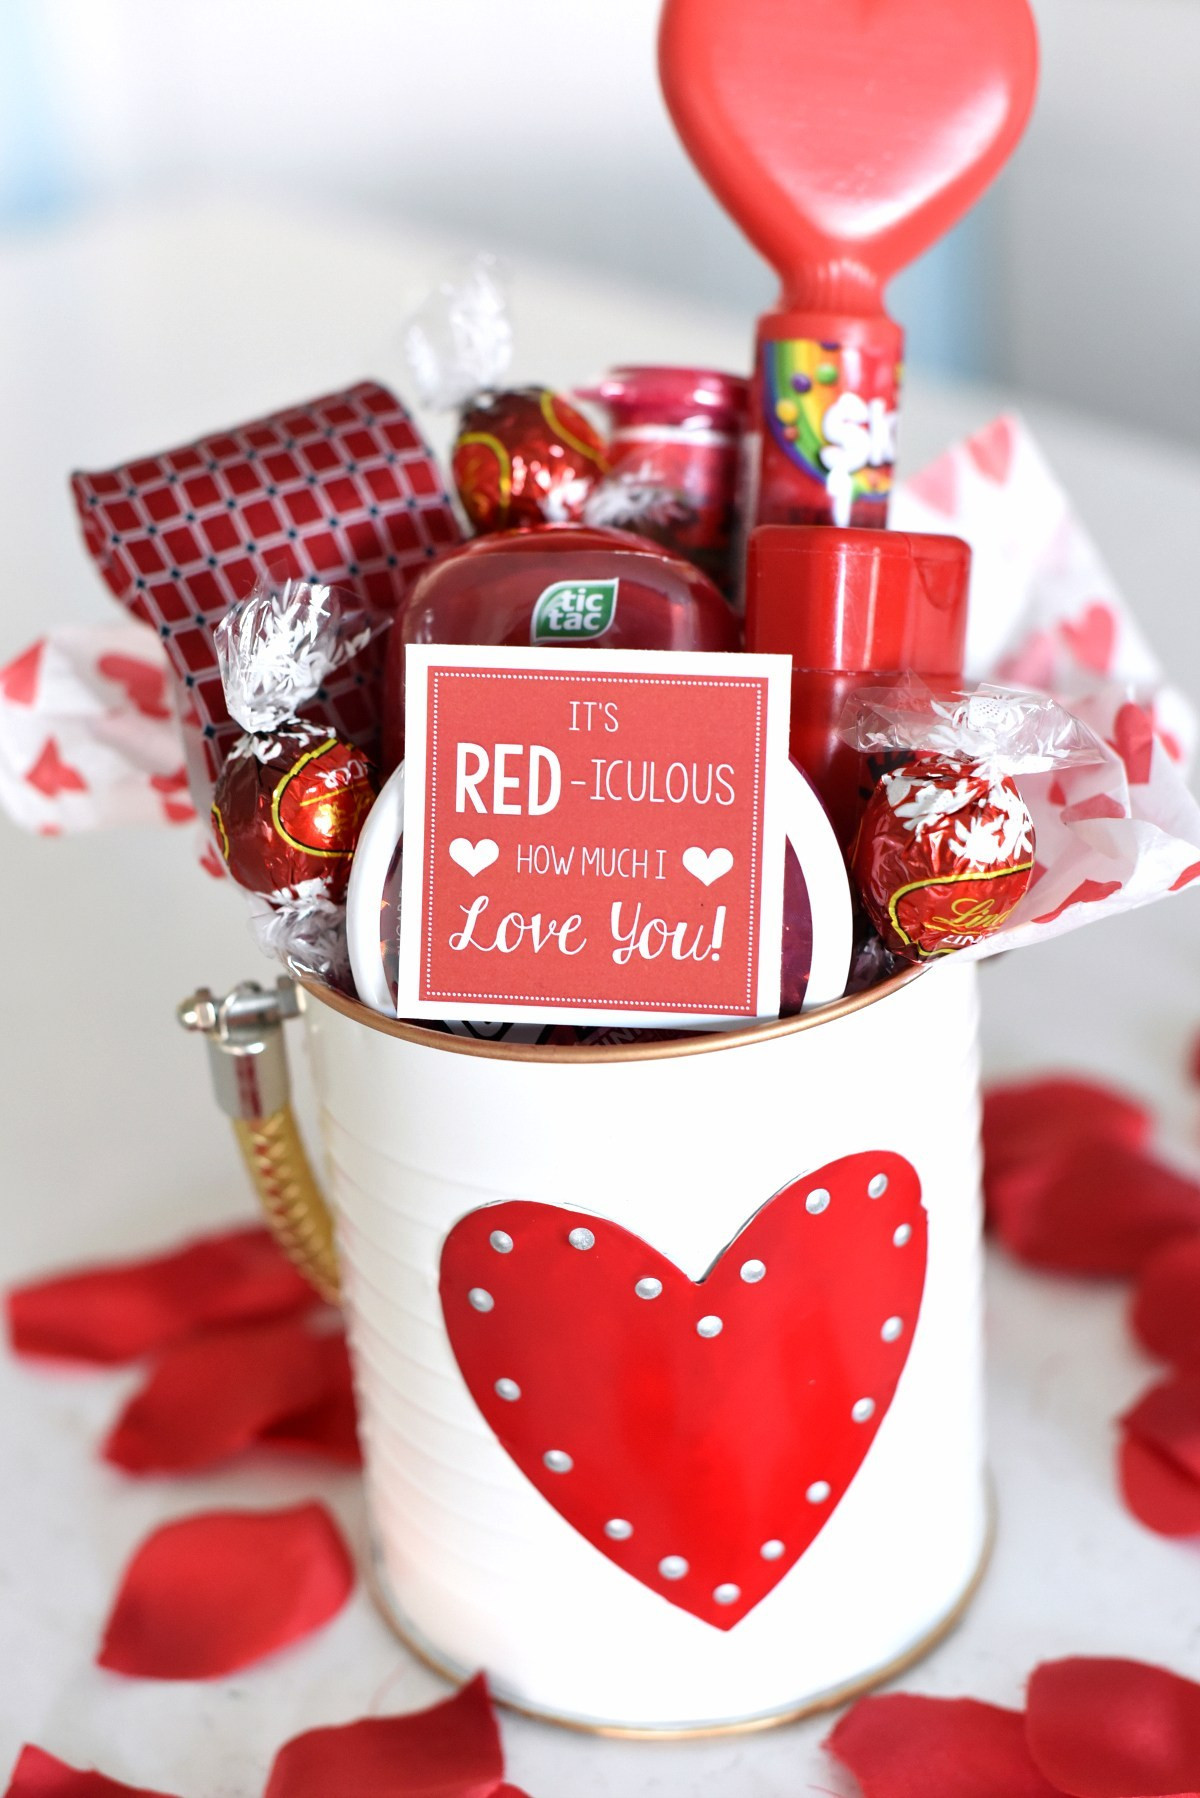 Diy Valentines Gift Ideas  25 DIY Valentine s Day Gift Ideas Teens Will Love